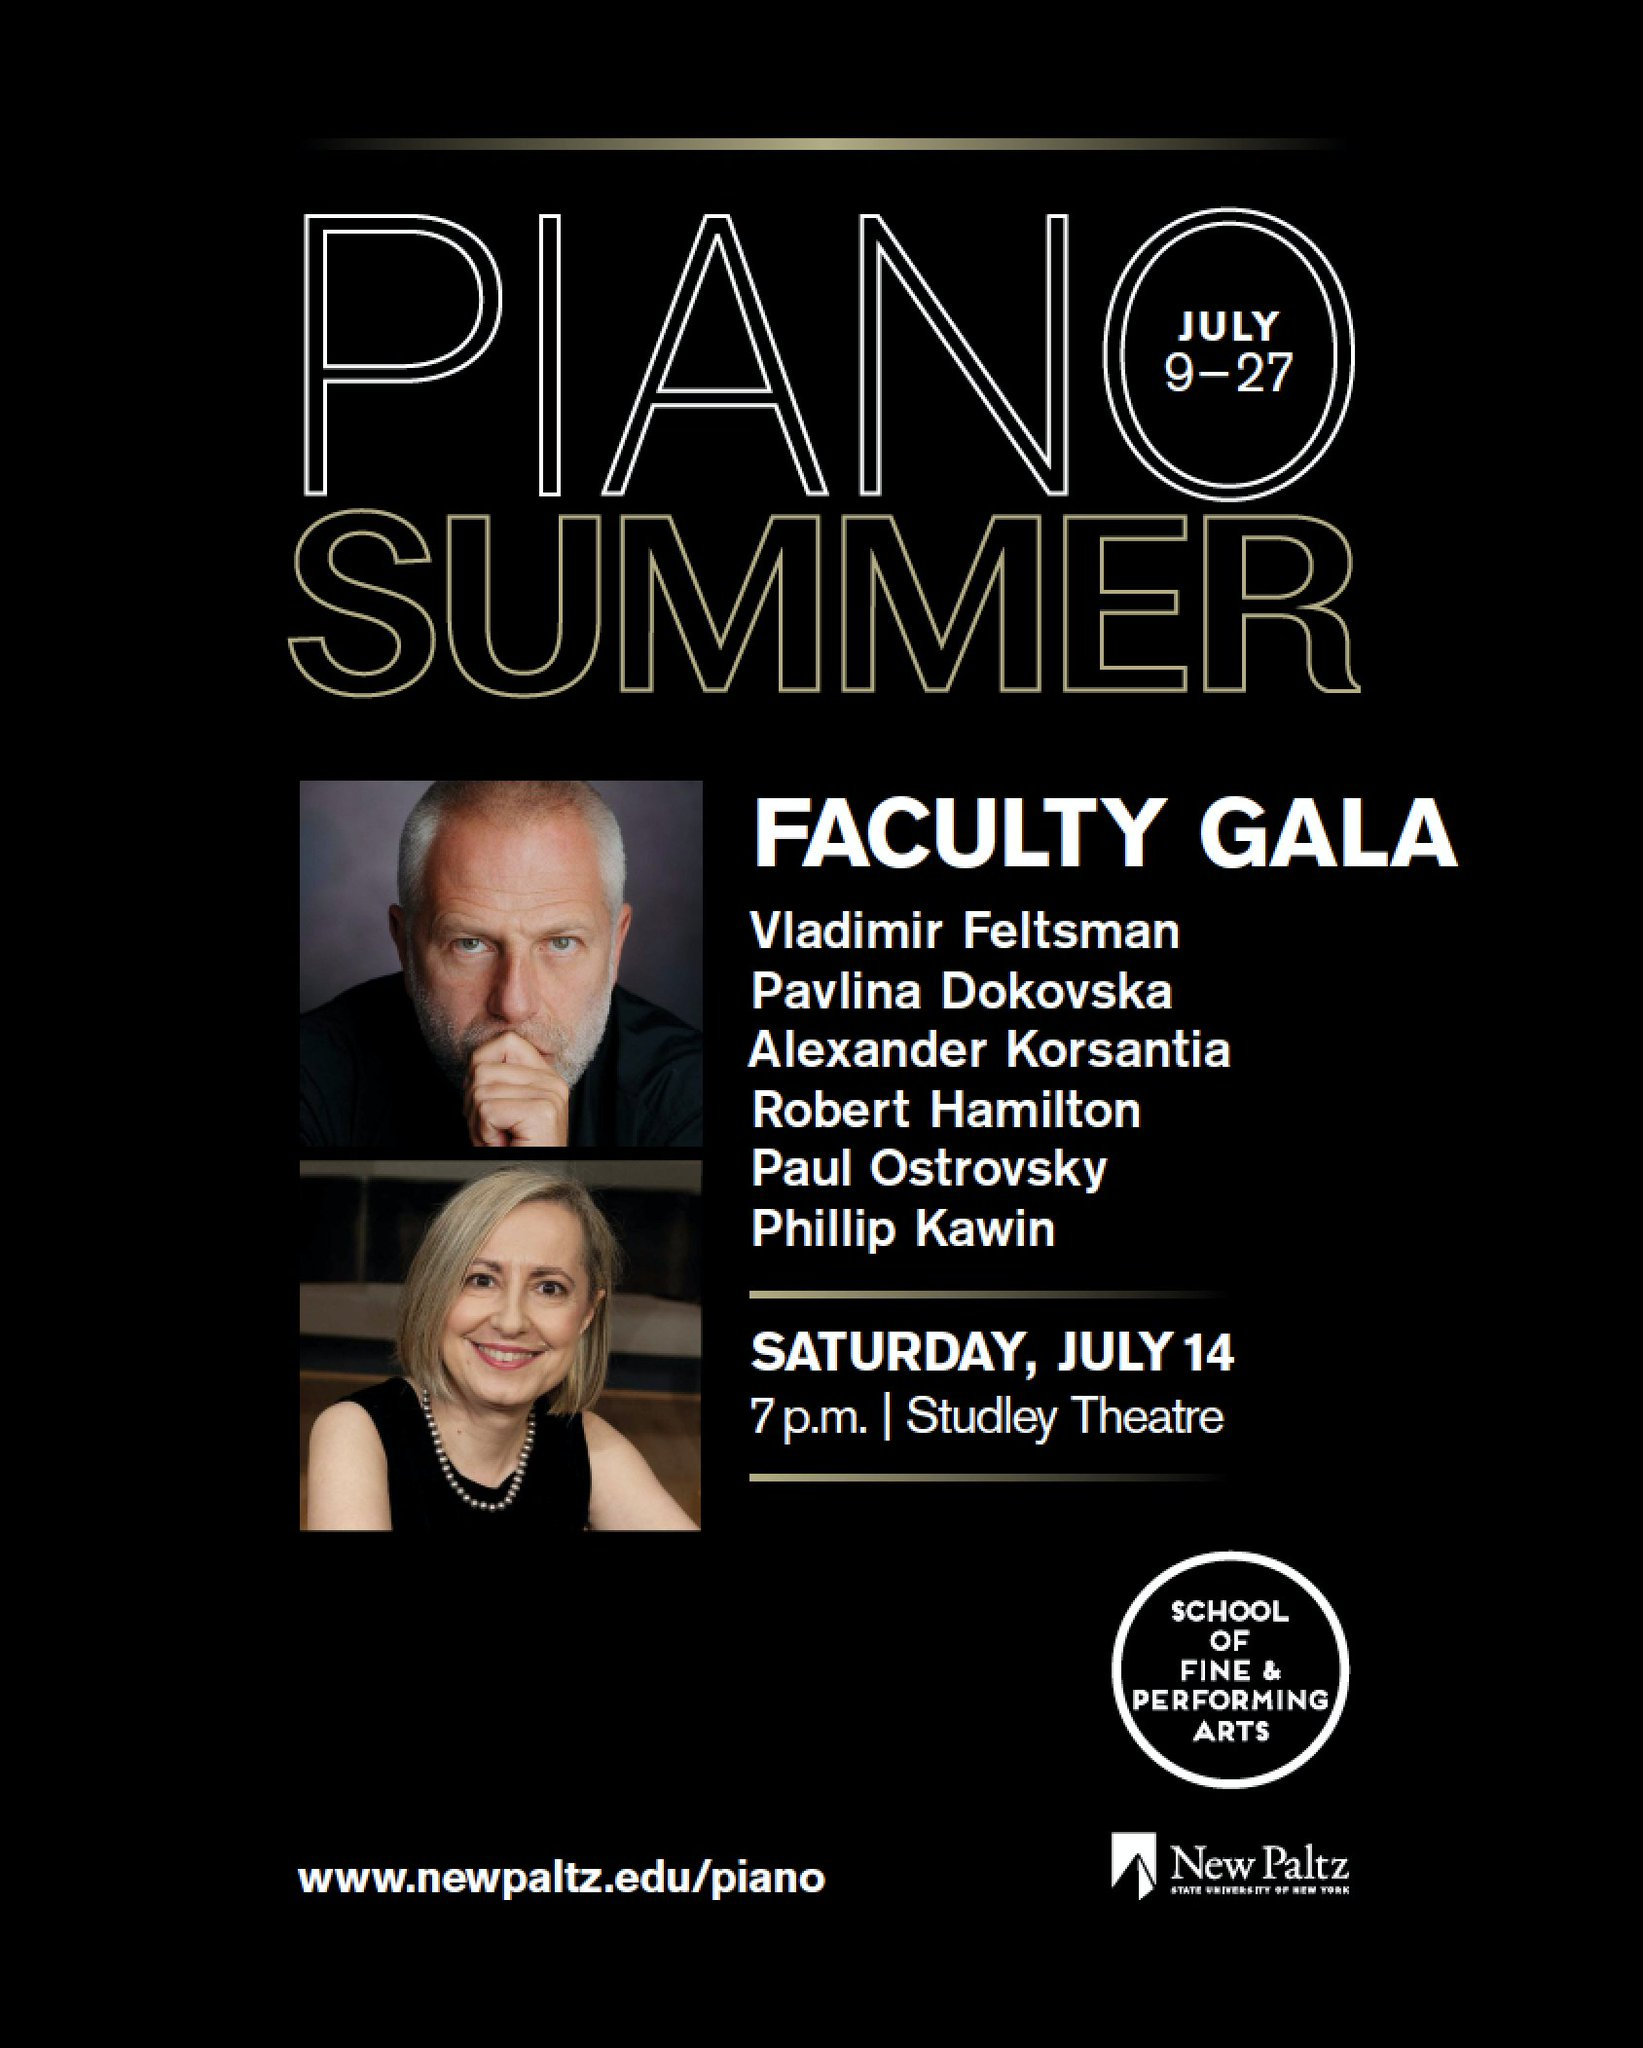 Reloaded twaddle – RT @newpaltz: PianoSummer's Faculty Gala features classical performances by six ...